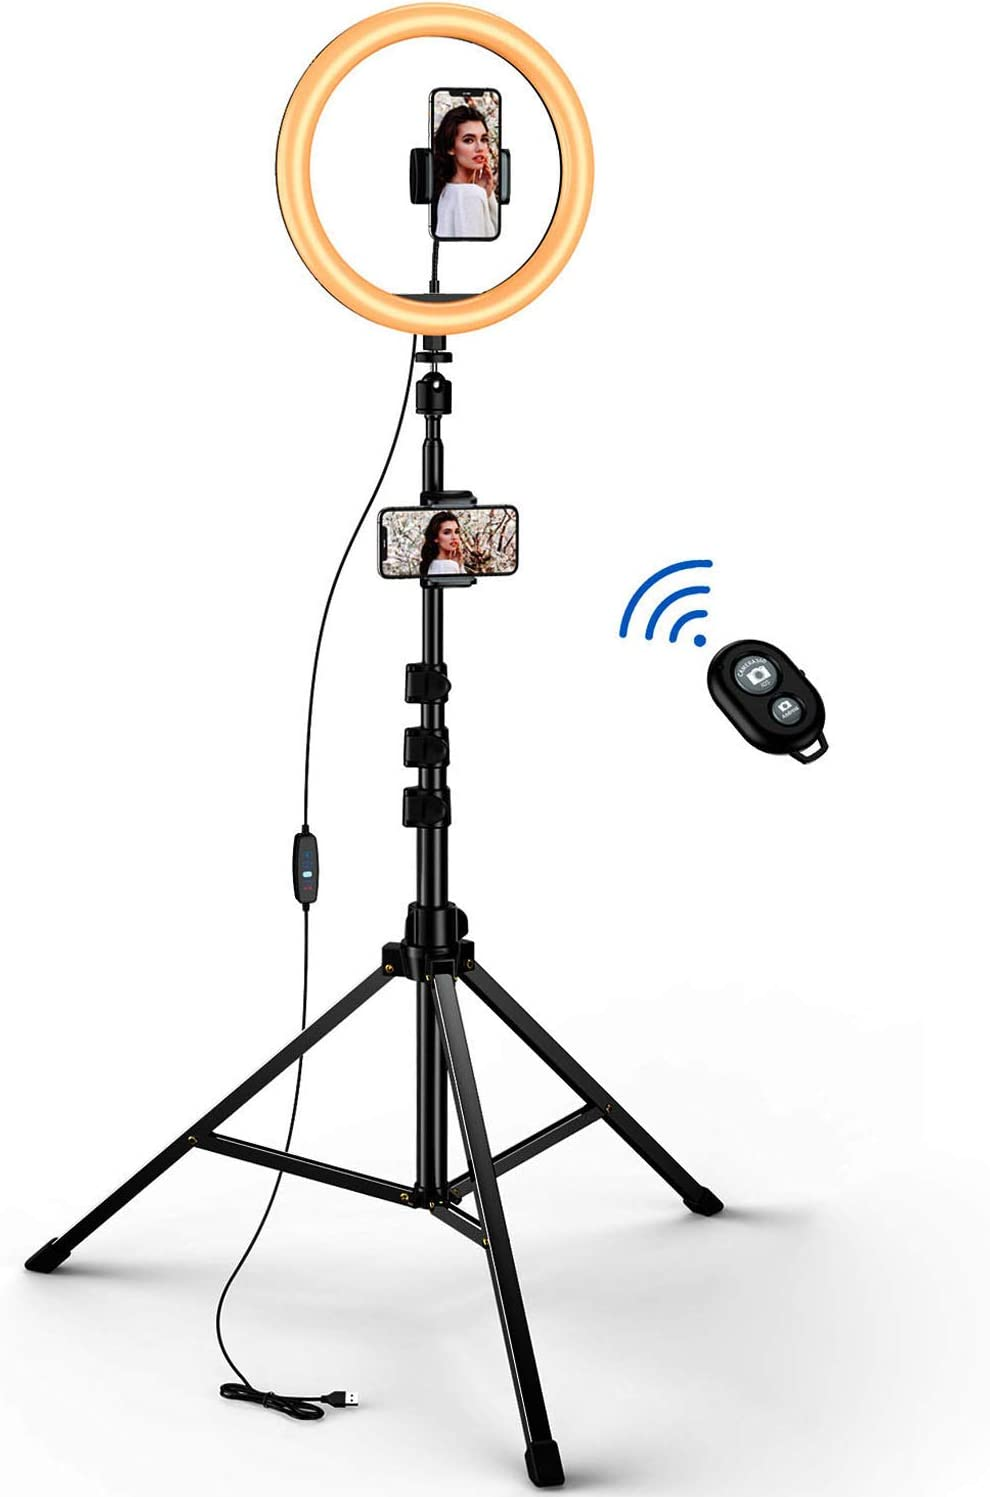 """10.2"""" Selfie Ring Light Kit, GUSGU Adjustable Dimmable LED Circle Light with Extendable Tripod Stand, 2 Phone Holders, Bluetooth Wireless Remote Shutter for Camera/Makeup/YouTube/Photography/Video …"""